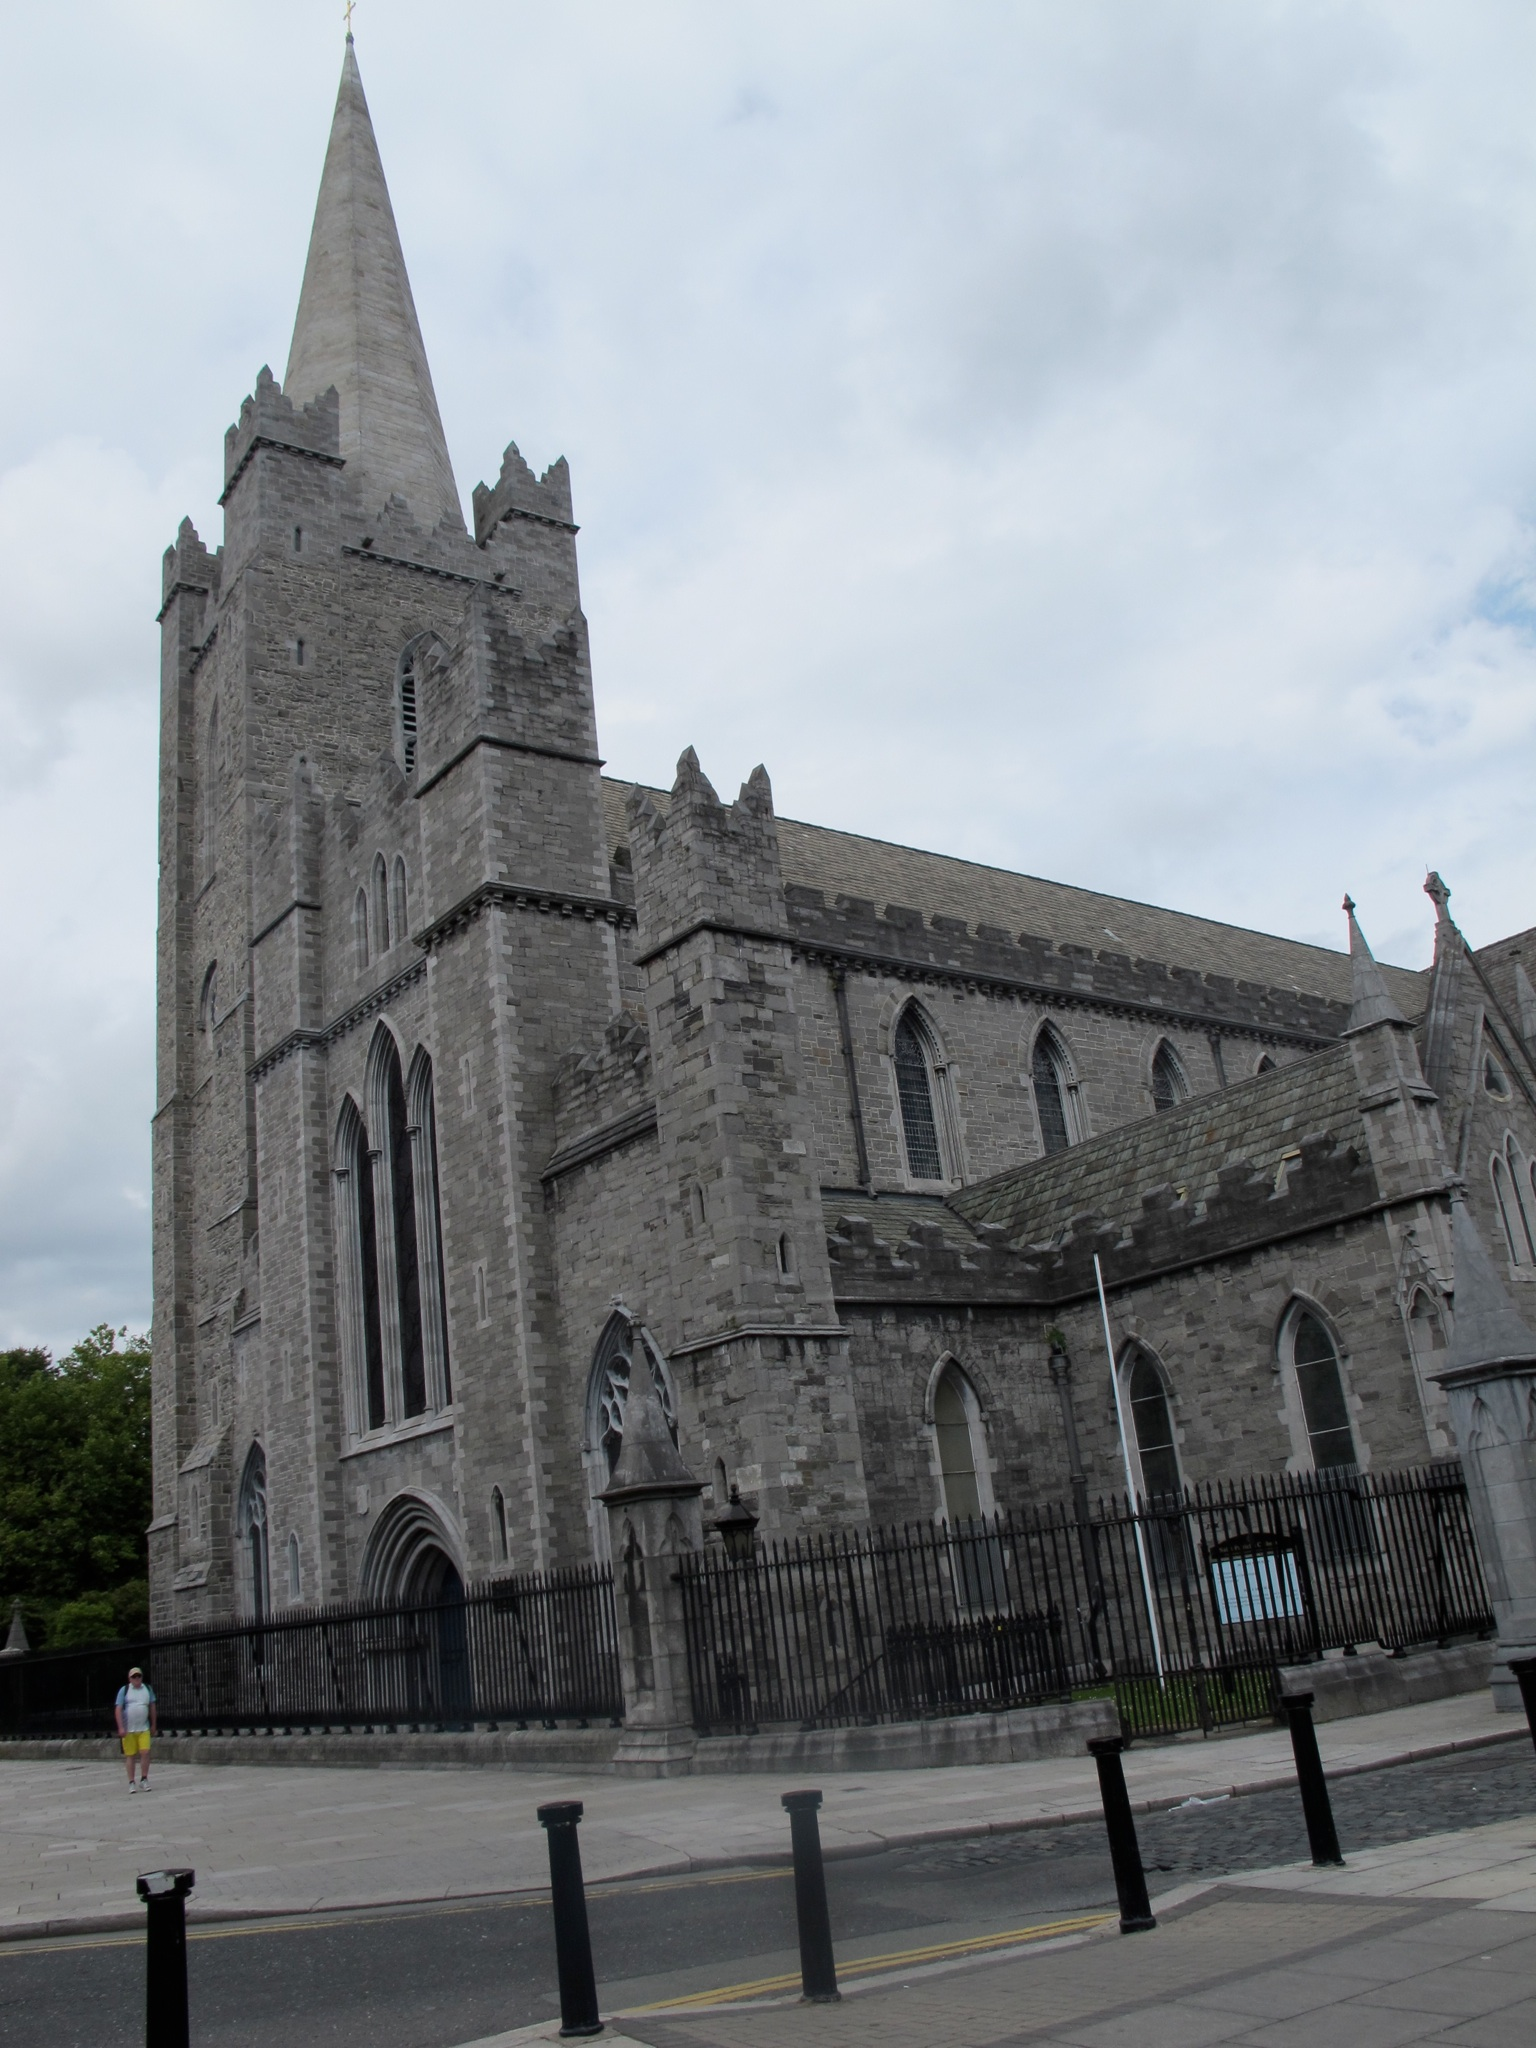 St. Patrick's Cathedral in Dublin, open to tourists and those looking for a place to pray and worship.